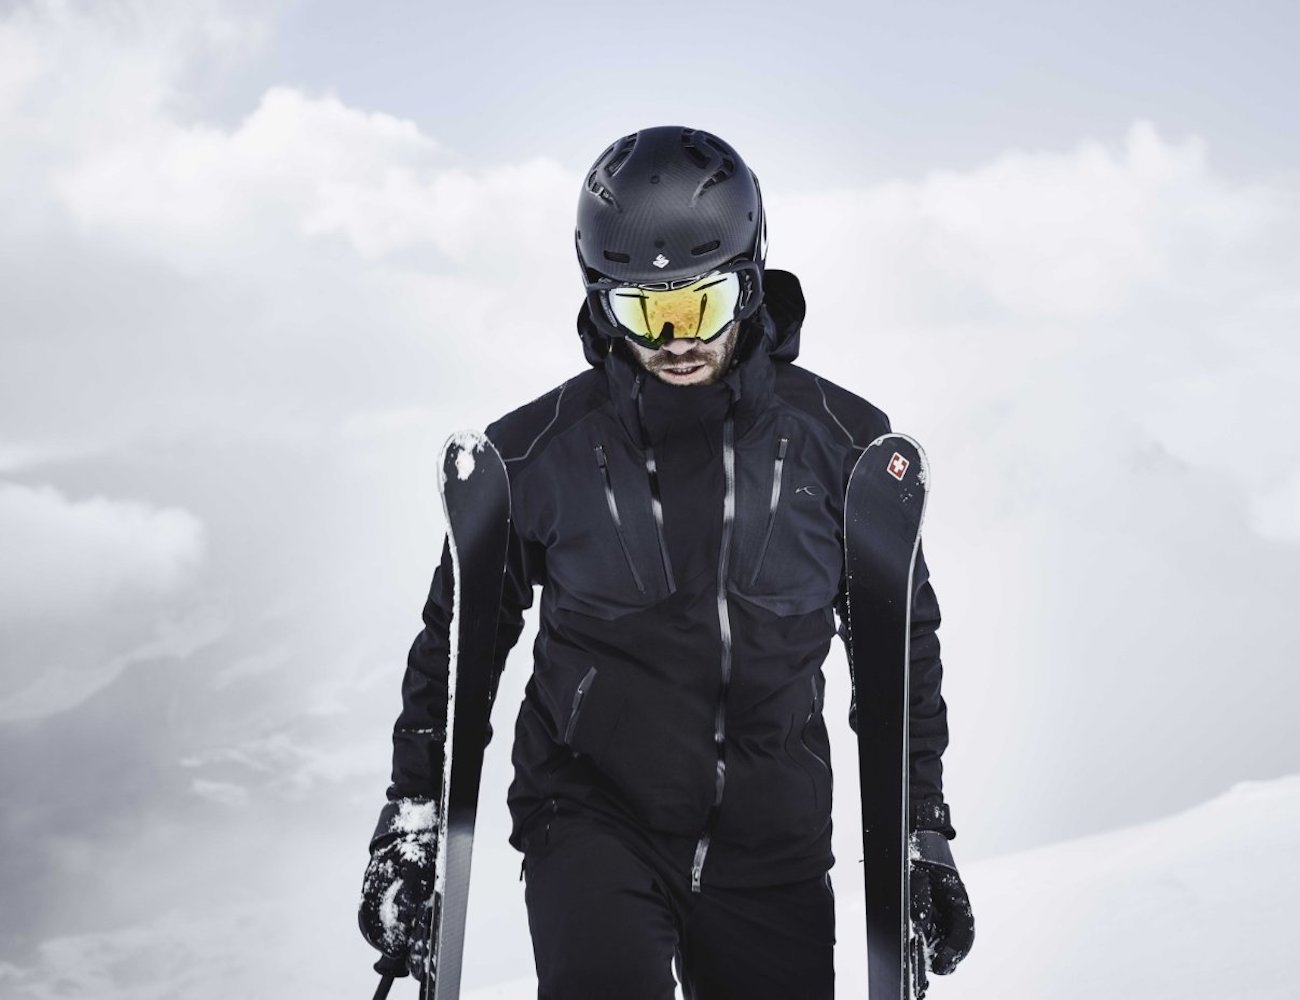 7SPHERE HYDRO_BOT Wearable Tech Ski Jacket manages moisture